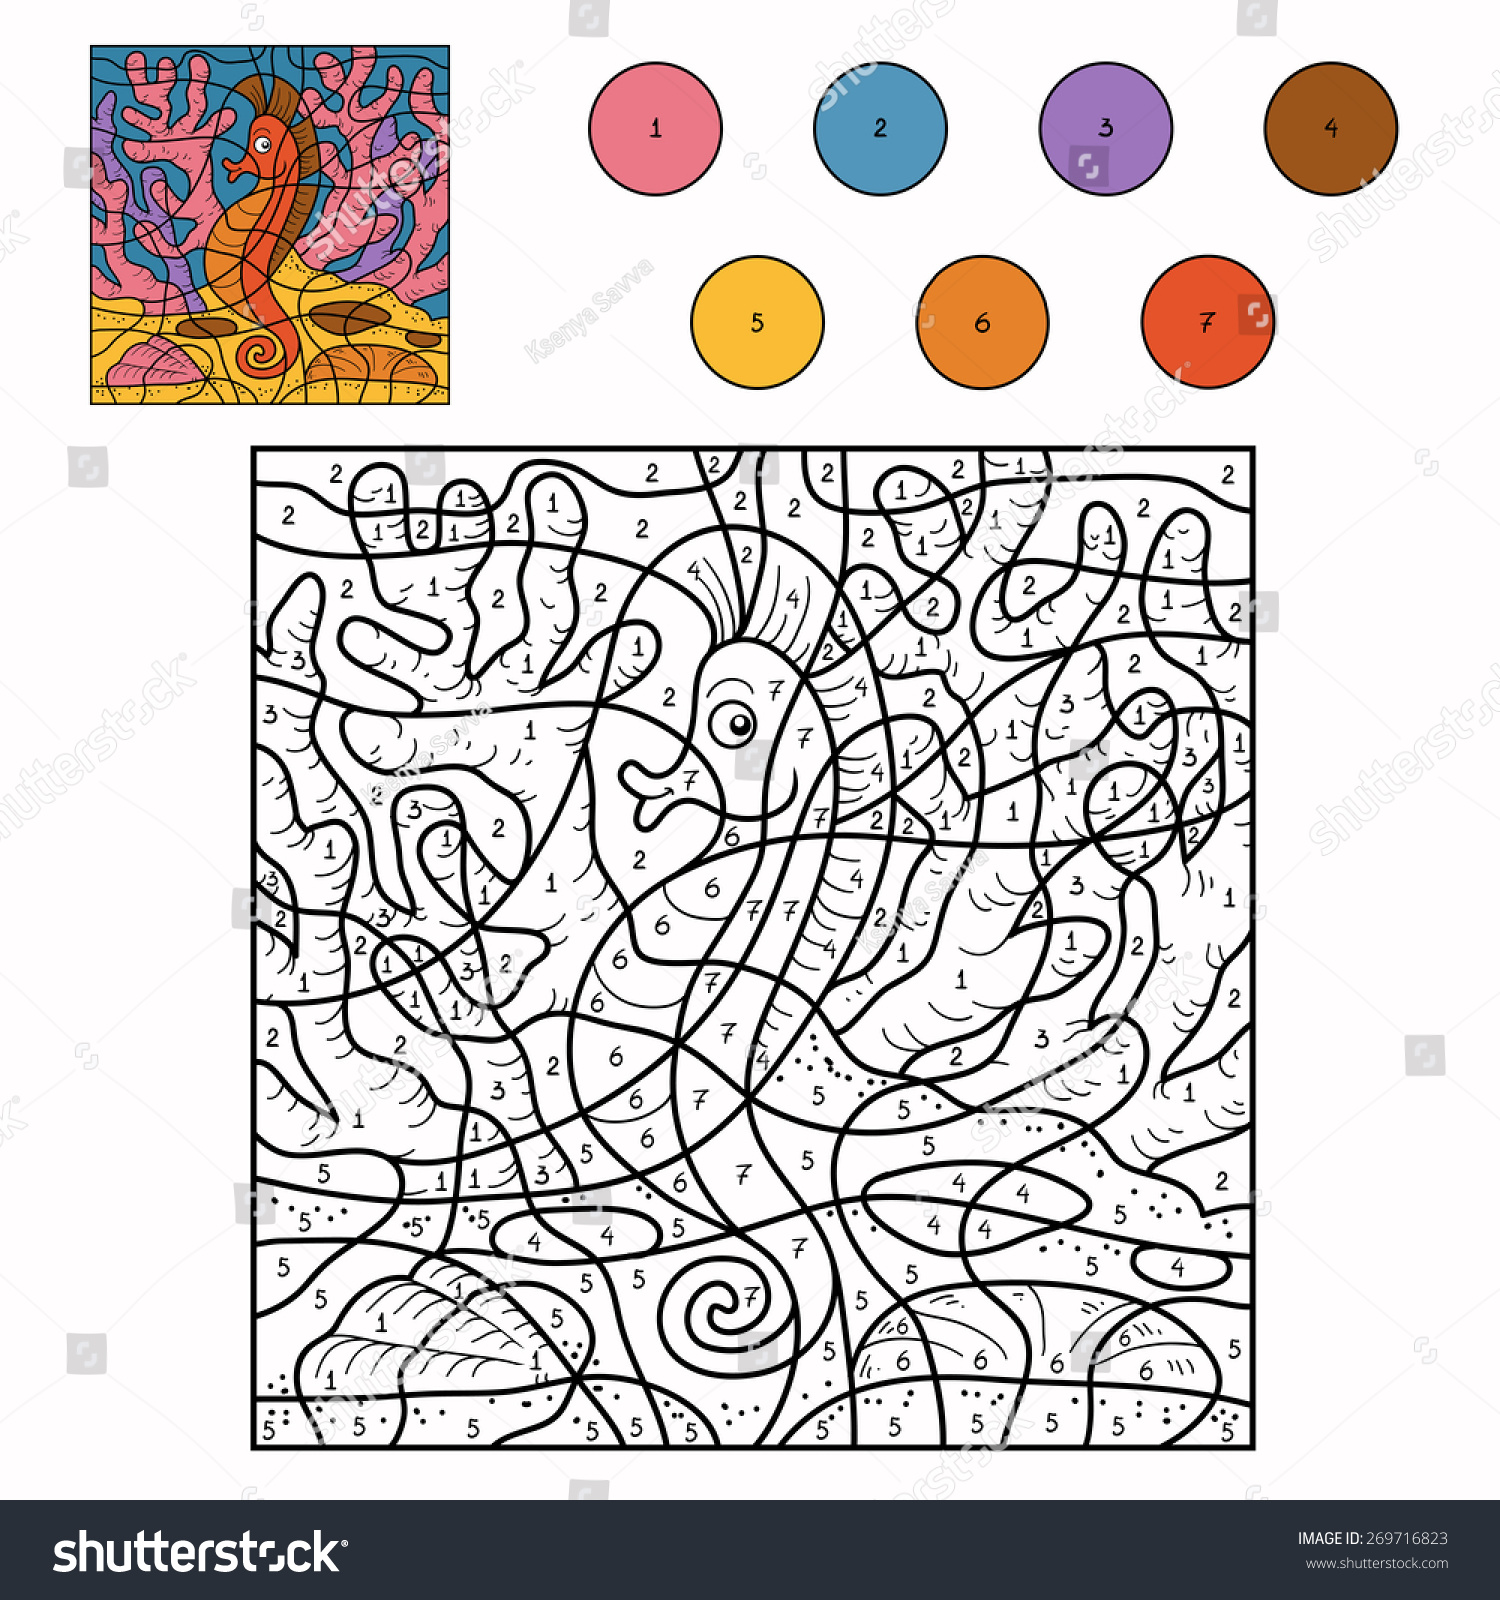 Horse Color By Number on Color By Numbers Math Worksheet Cow Coloring Page For